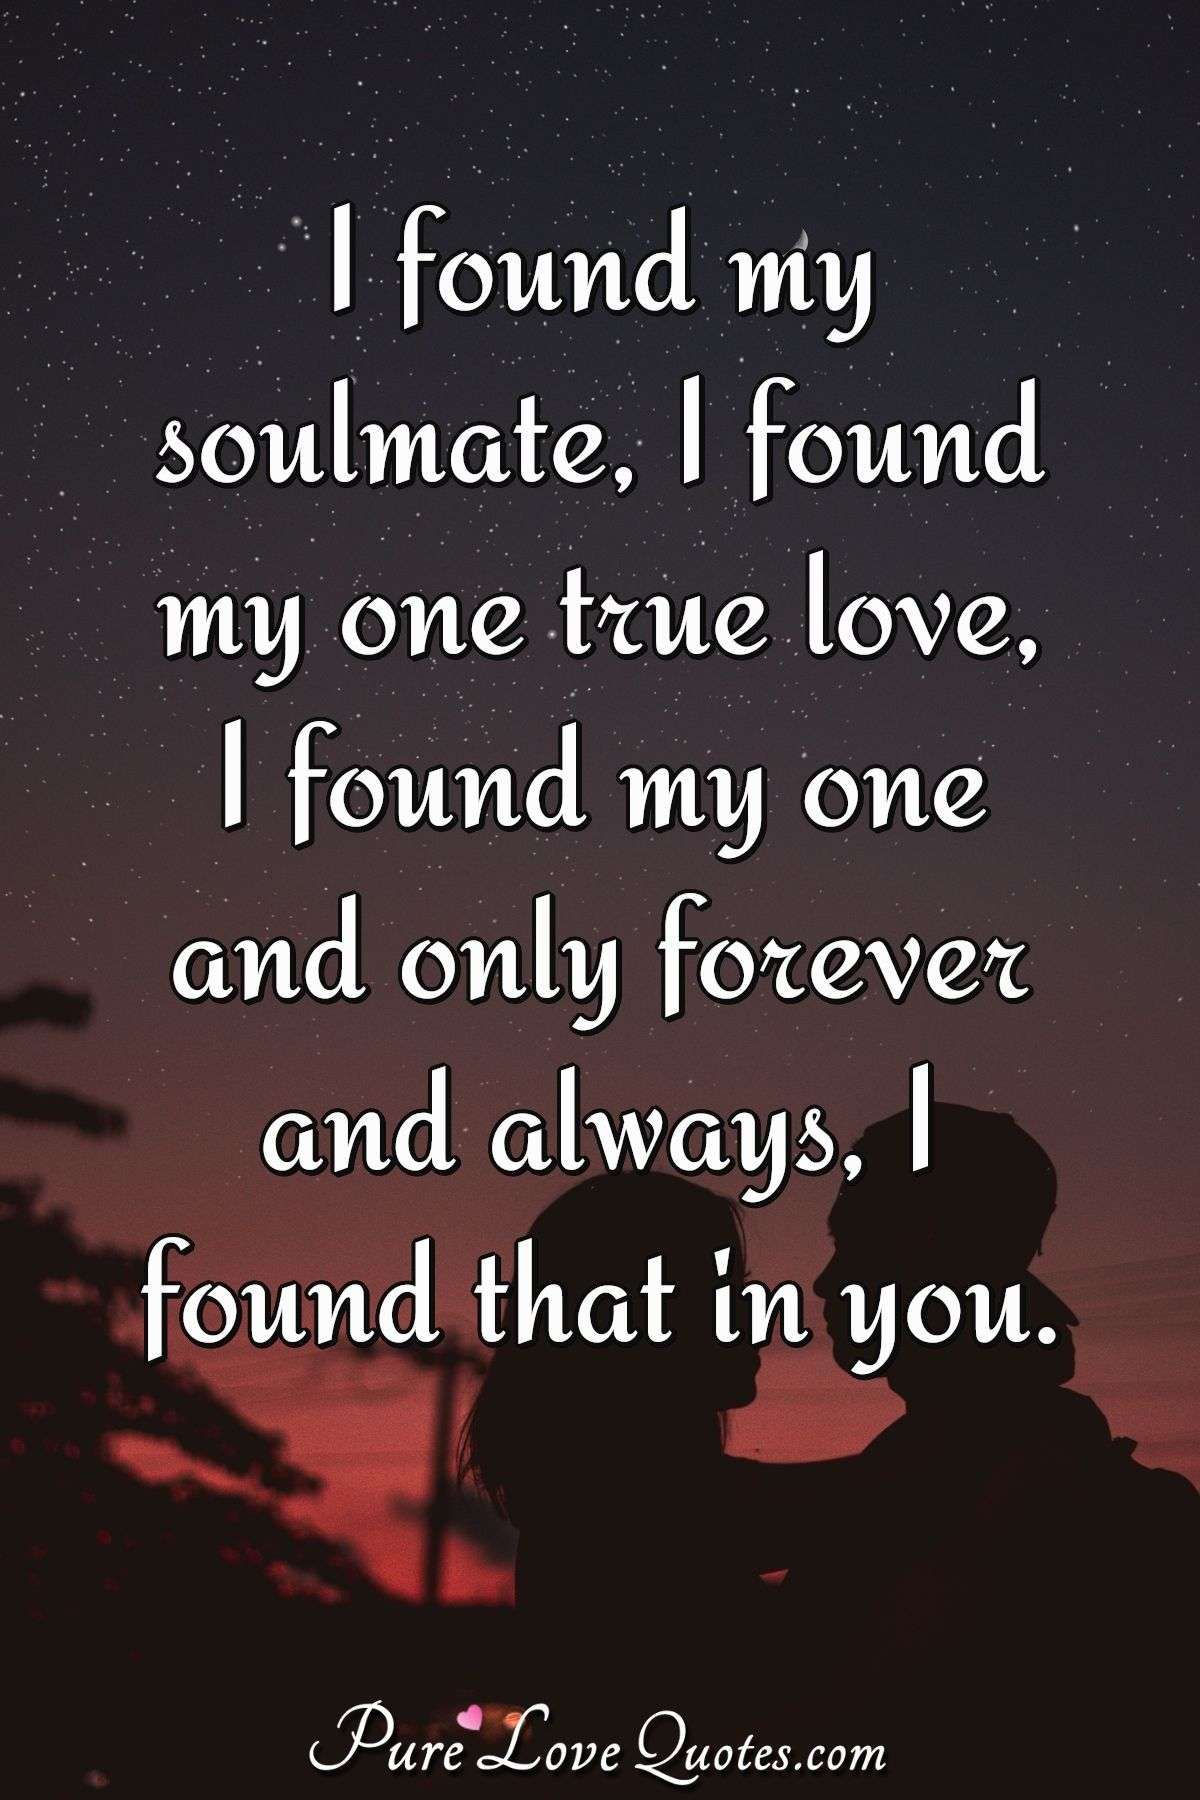 Forever True Love Quotes : forever, quotes, Found, Soulmate,, Love,, Forever, PureLoveQuotes